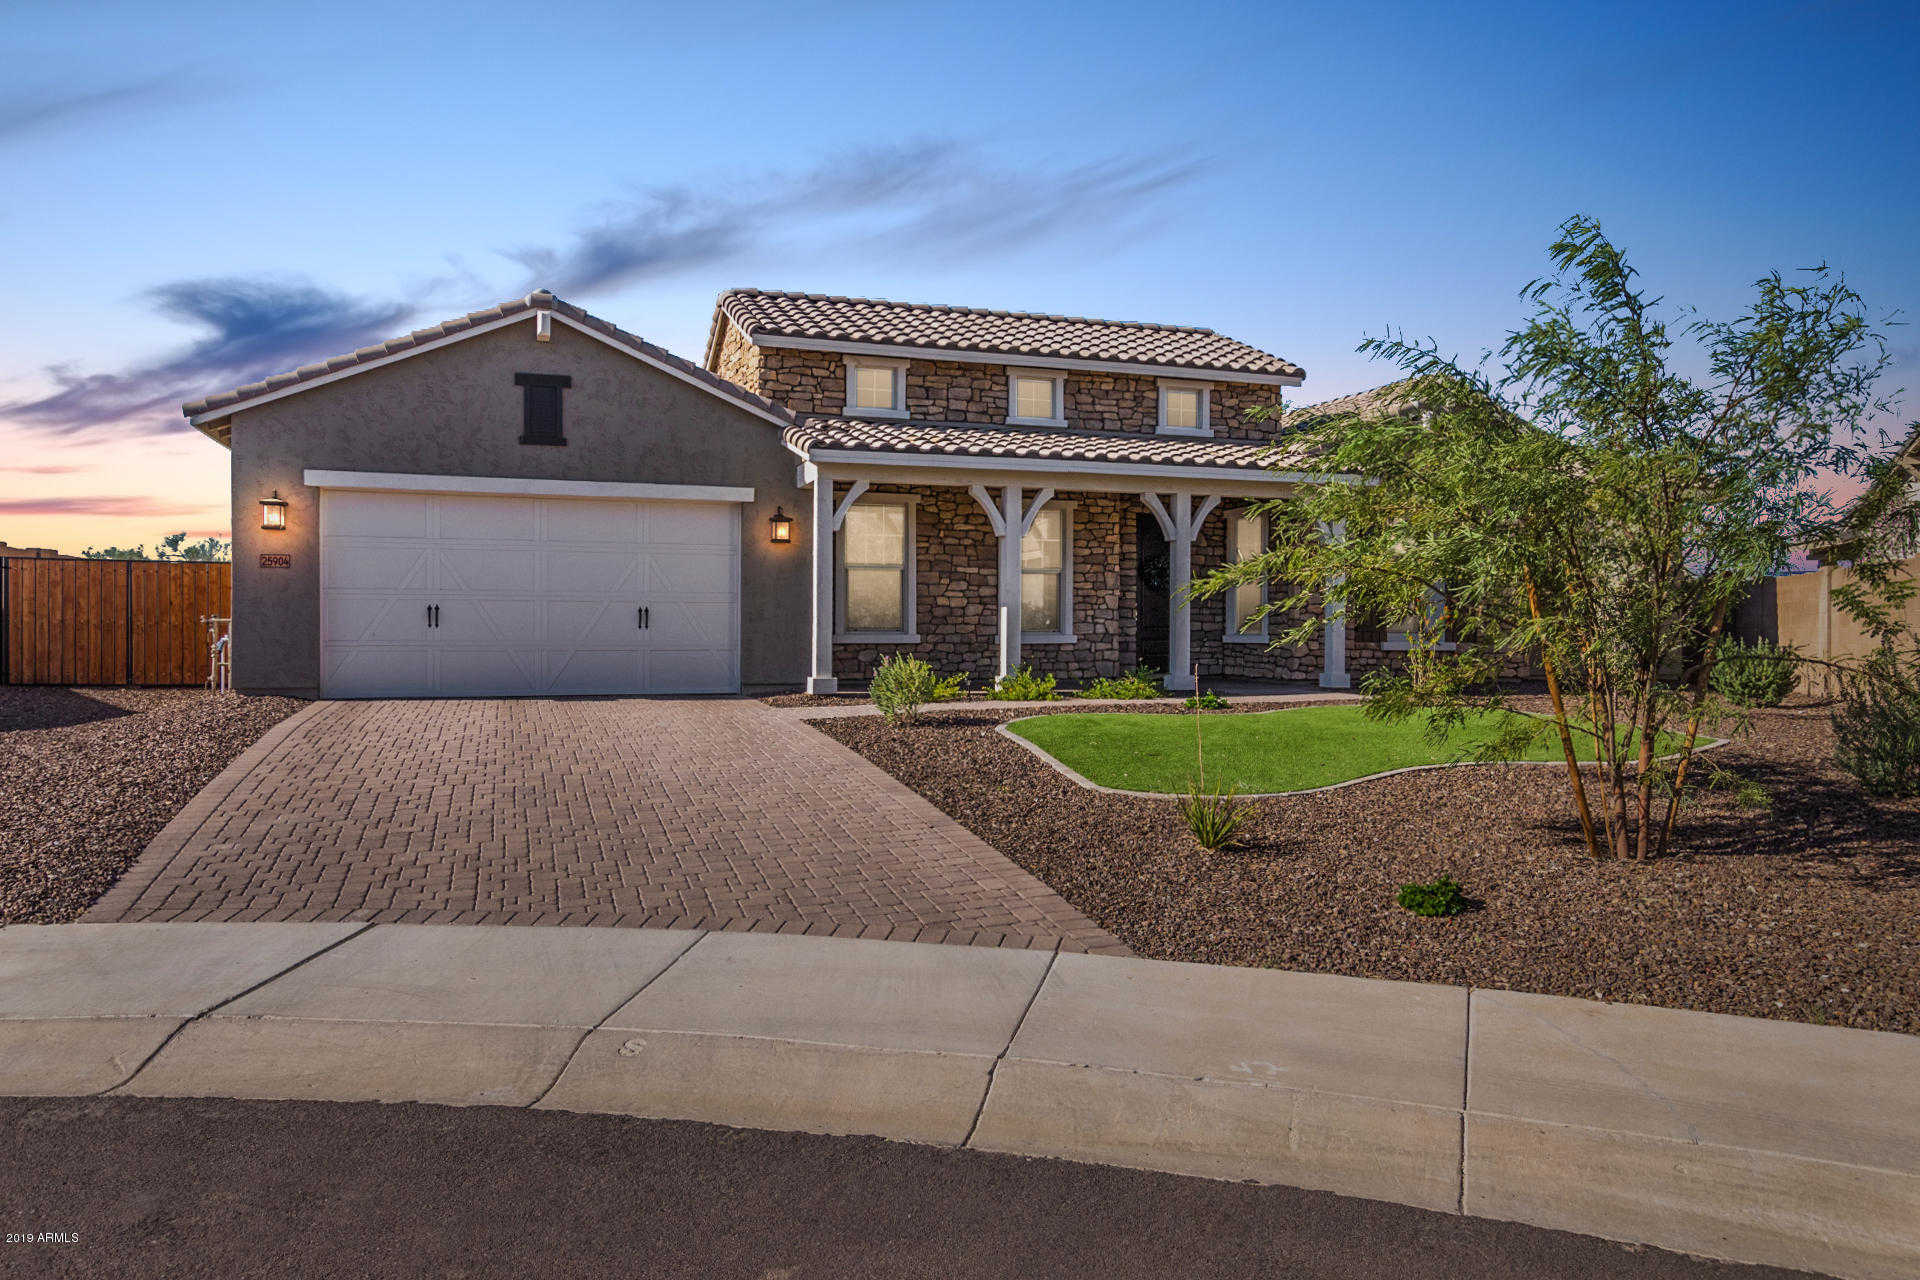 $753,500 - 4Br/4Ba - Home for Sale in Querencia Phase 2, Peoria